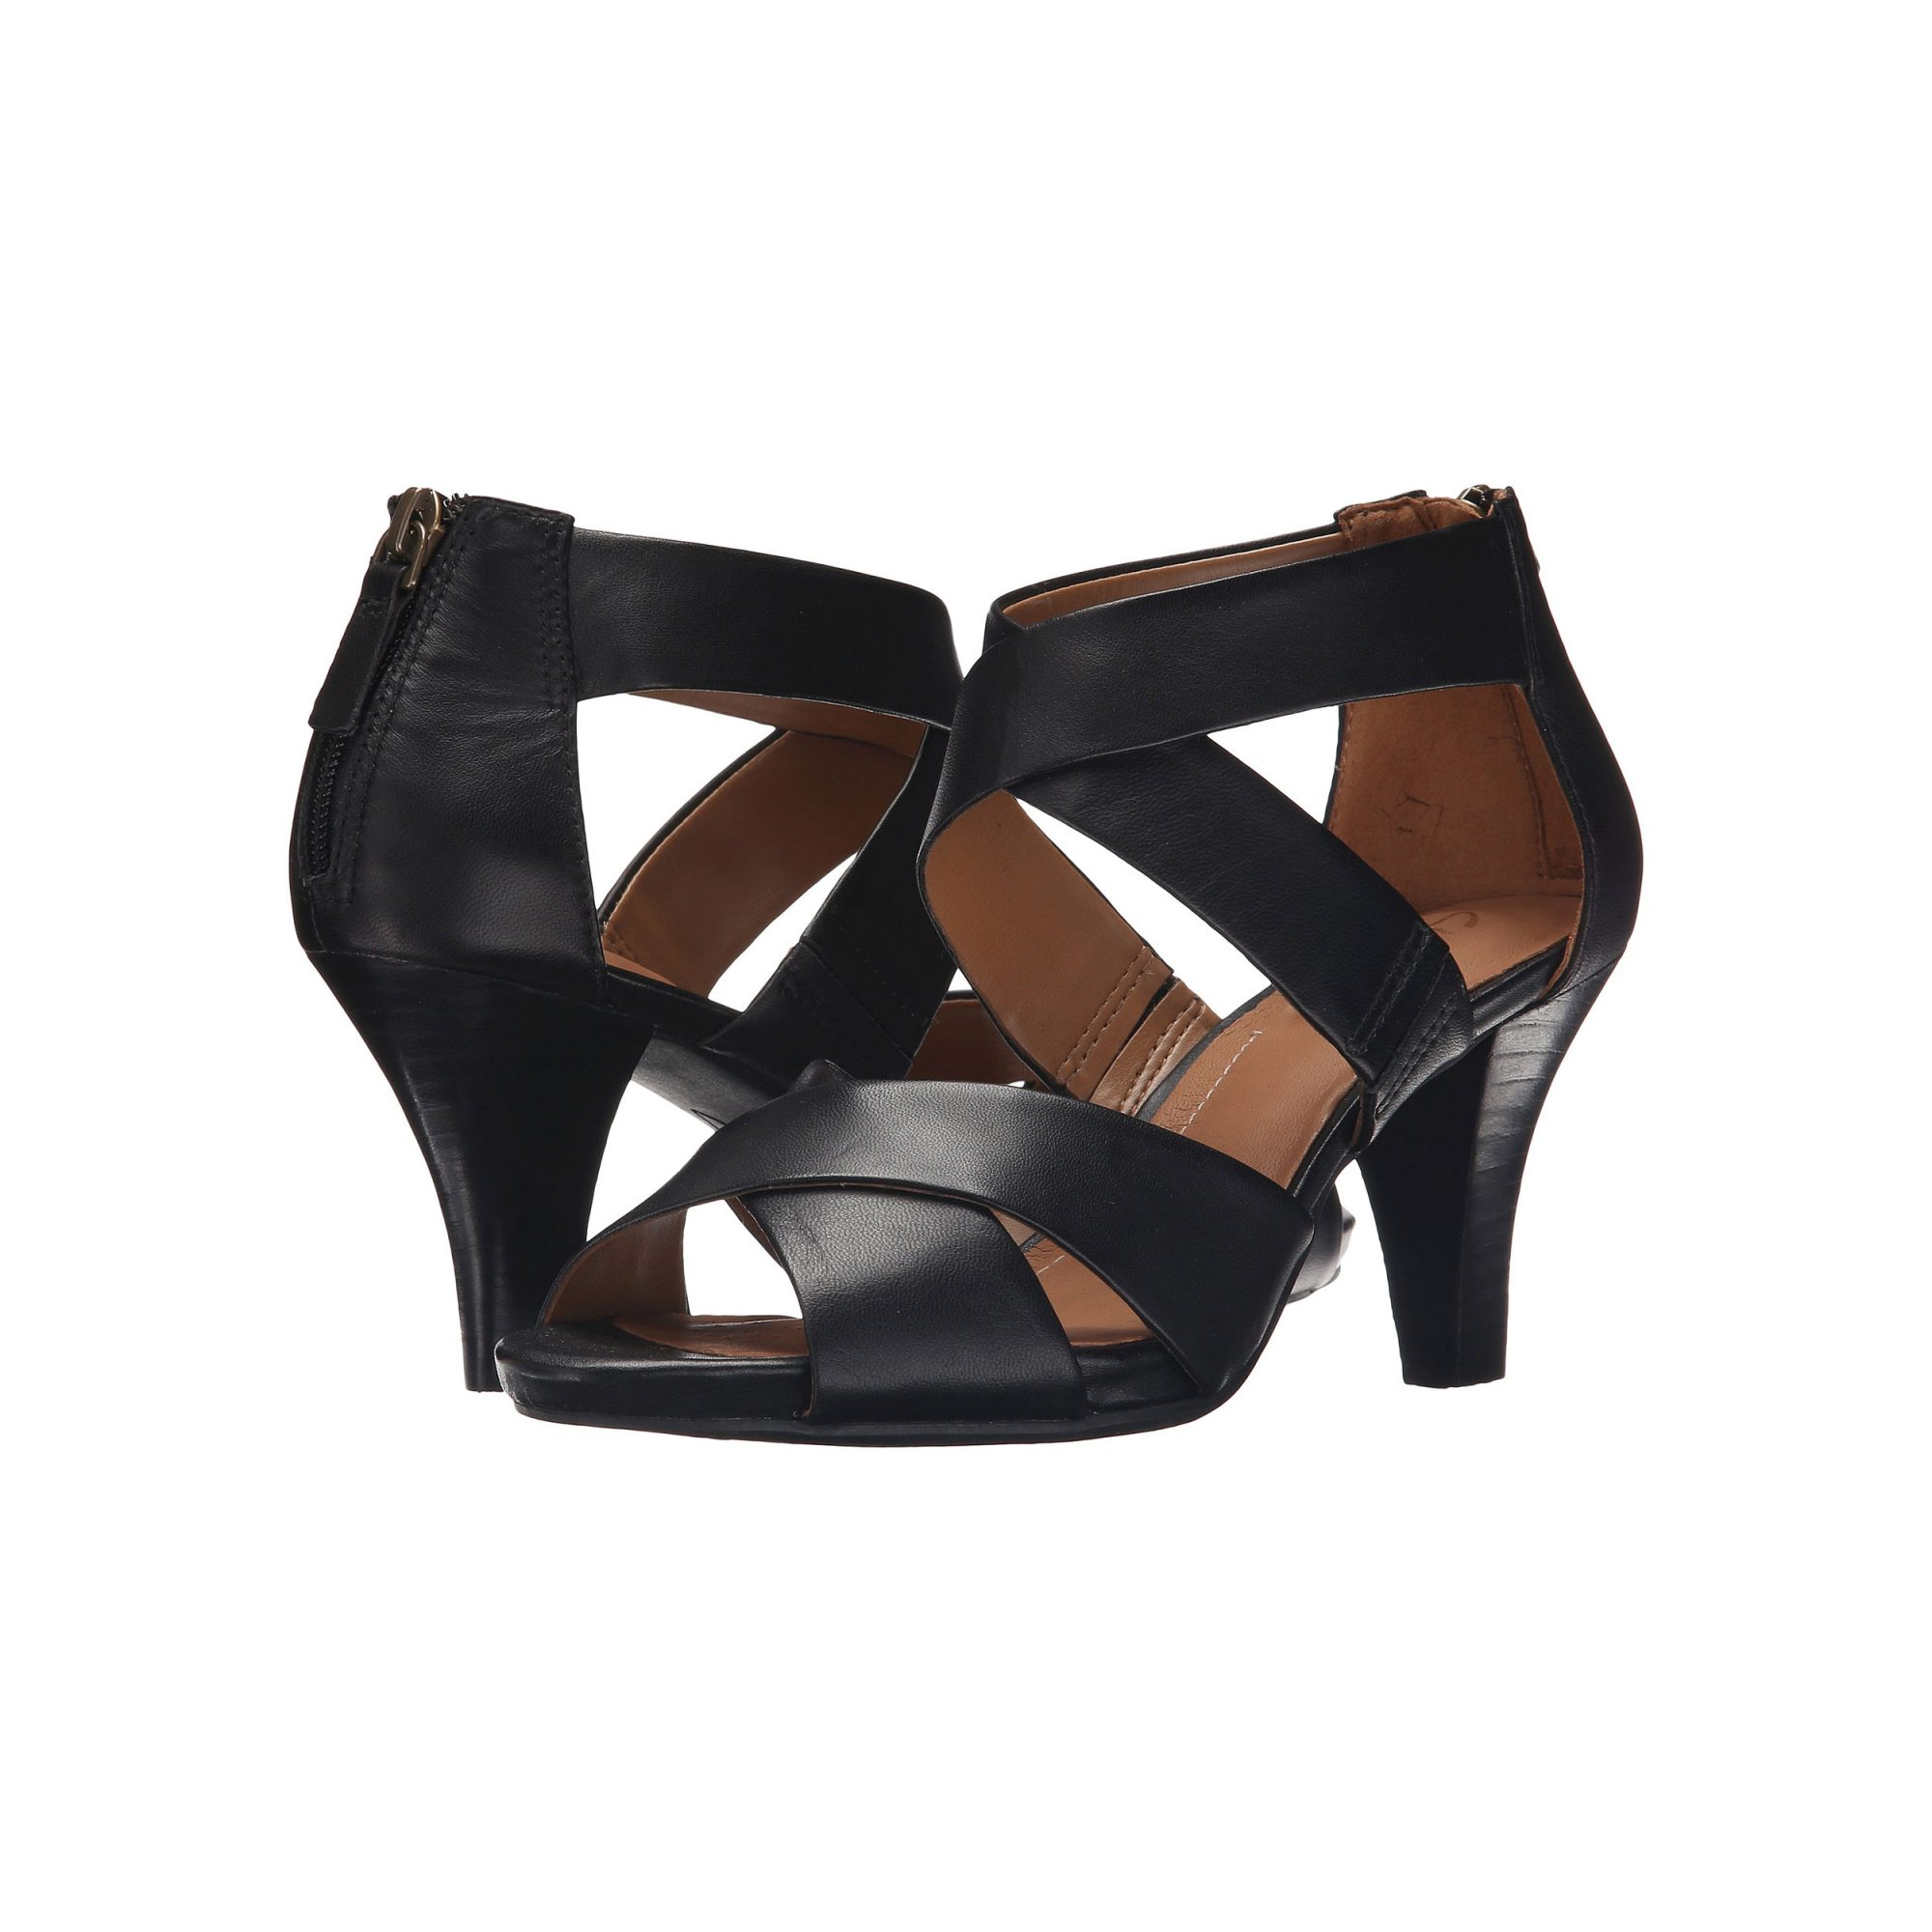 The Most Comfortable Heels I've Ever Worn - Health